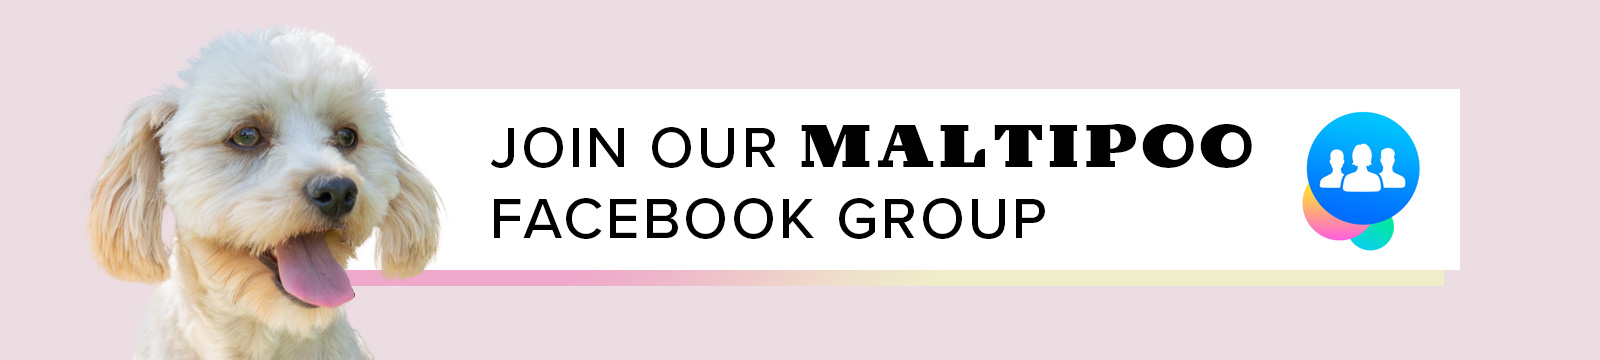 Maltipoo Facebook Group